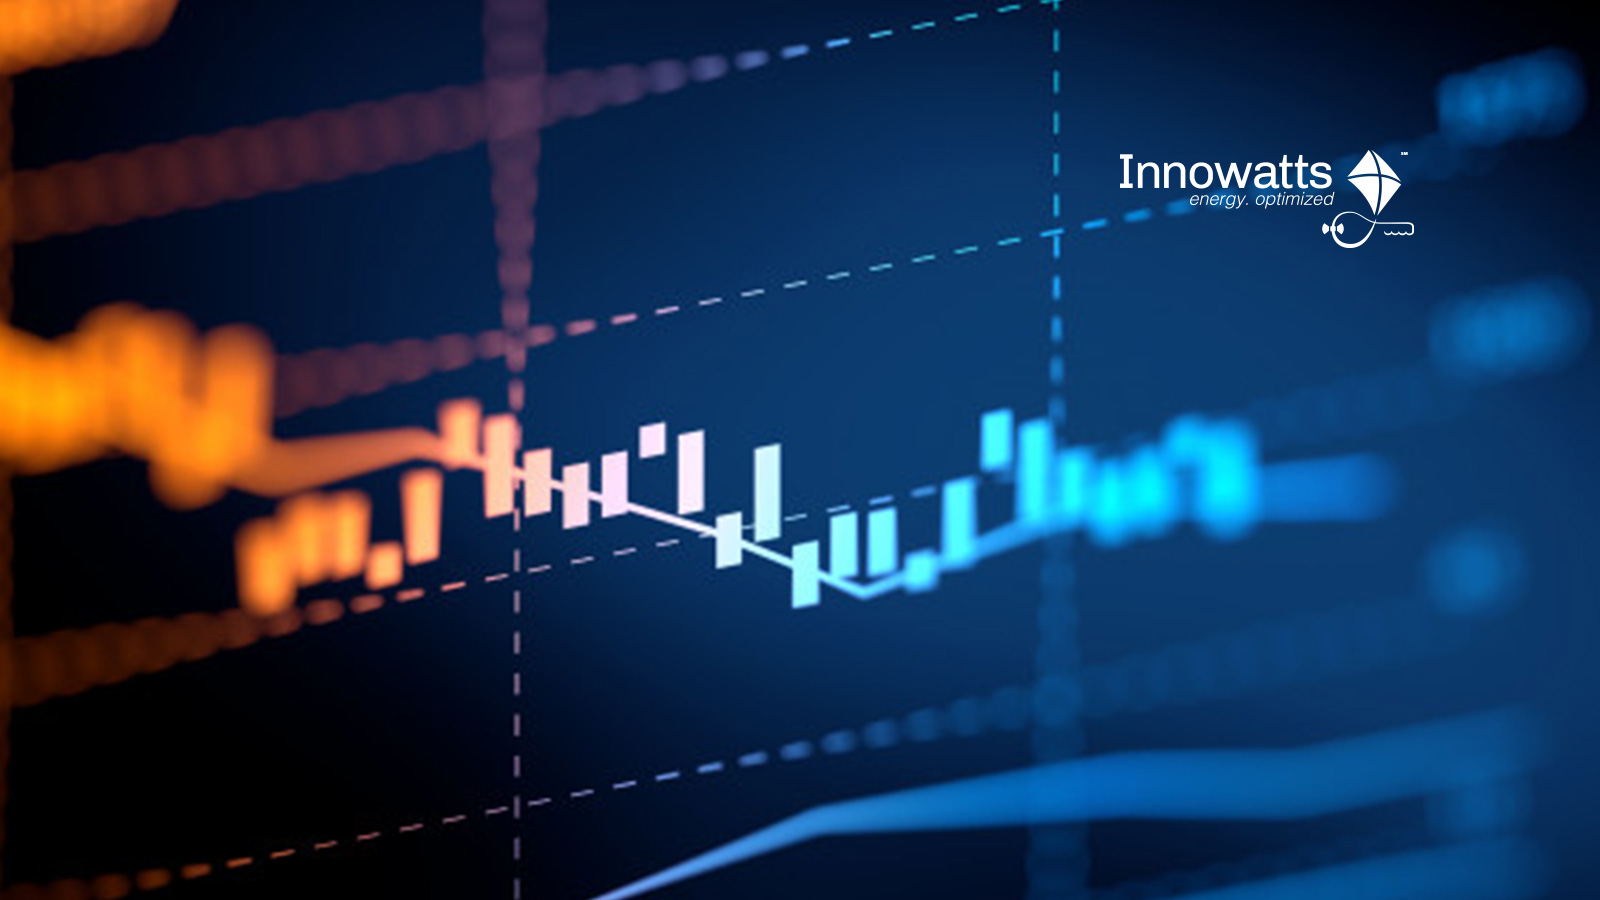 Innowatts-Brings-Advanced-Energy-Analytics-to-South-America